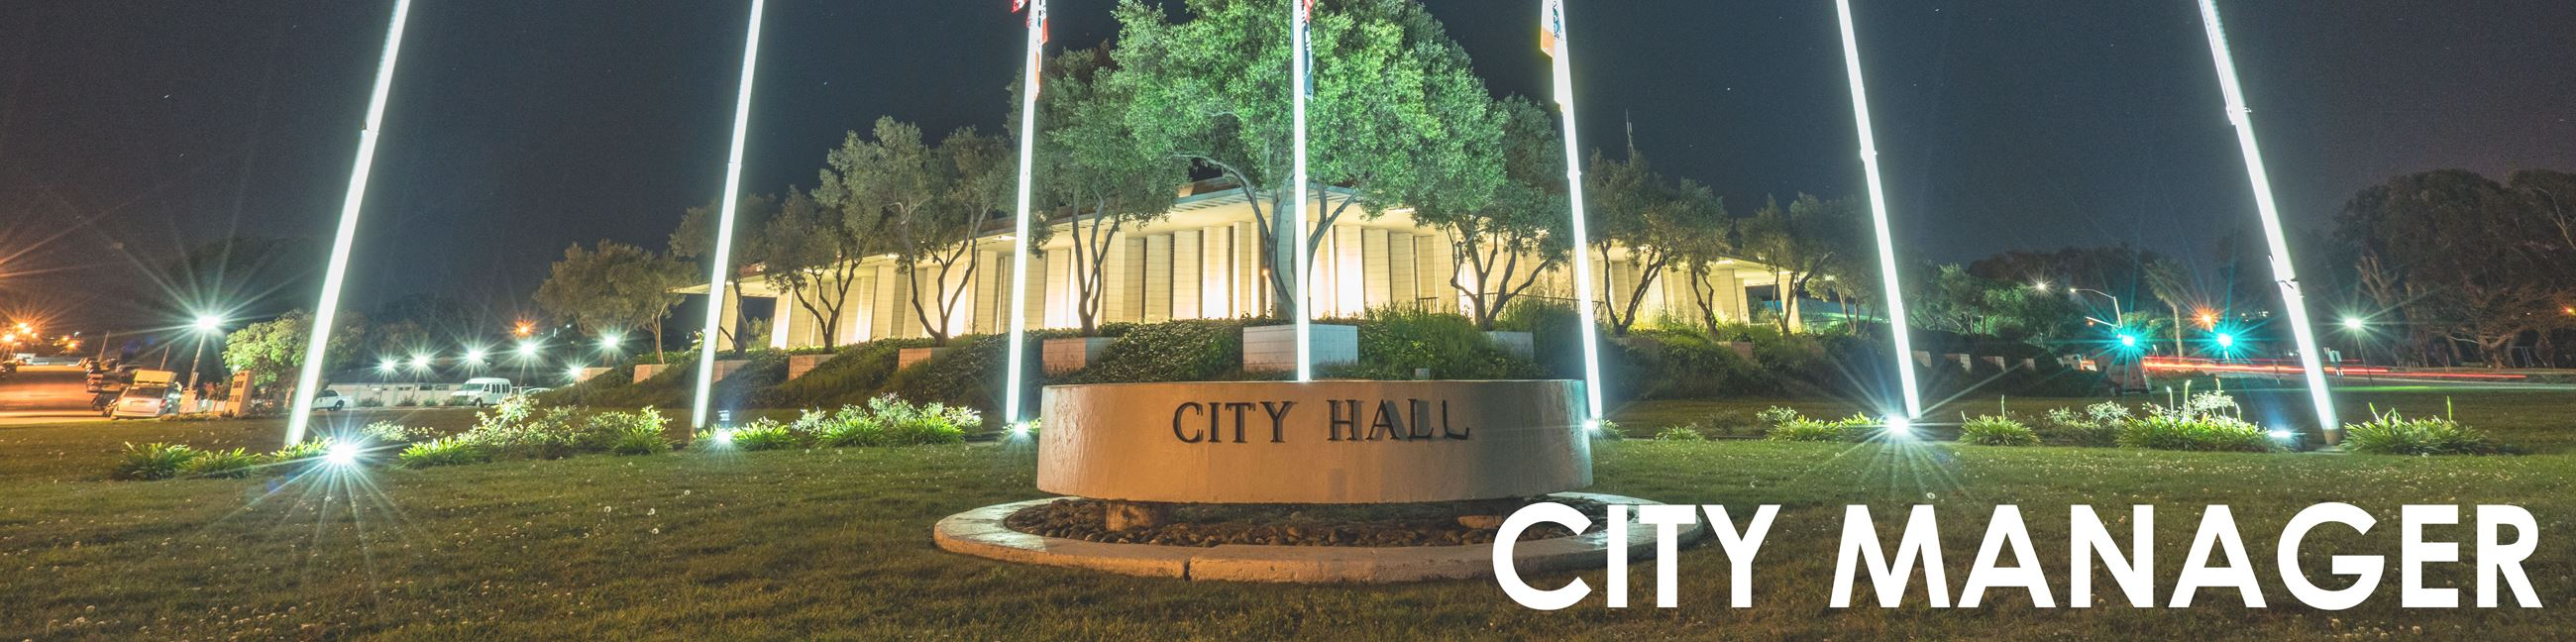 """City Manager"" image of City Hall"